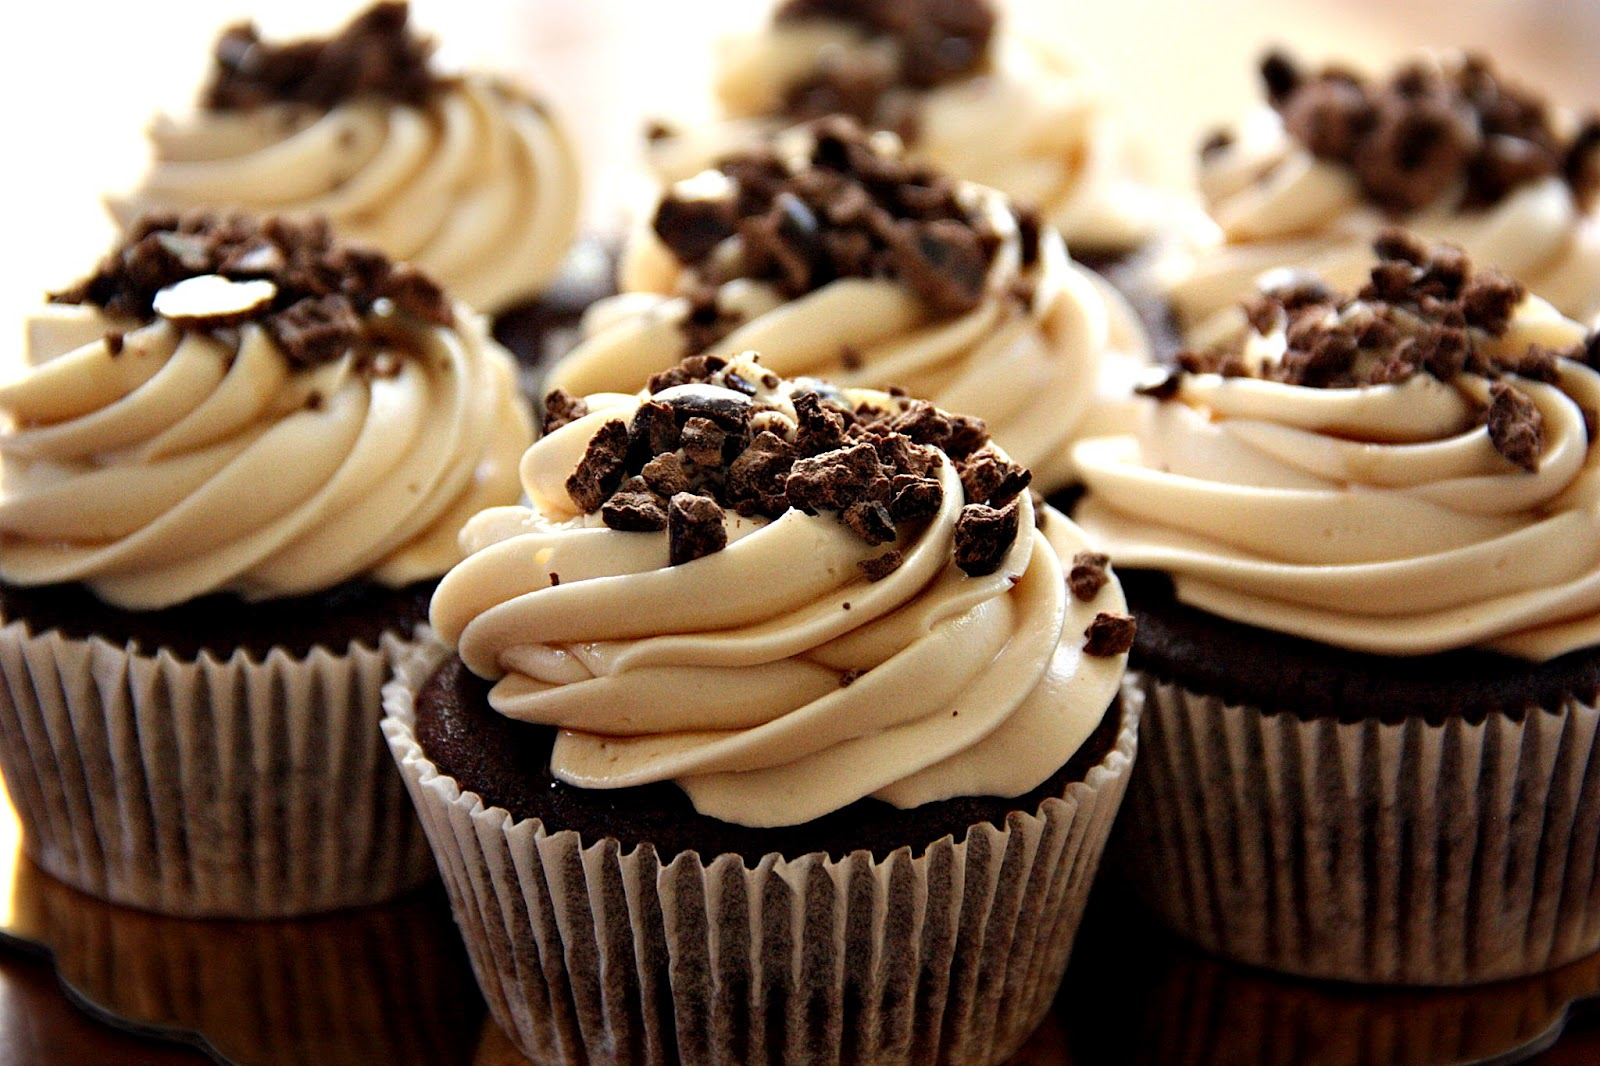 7 Photos of Chocolate Cupcakes With Kahlua Frosting